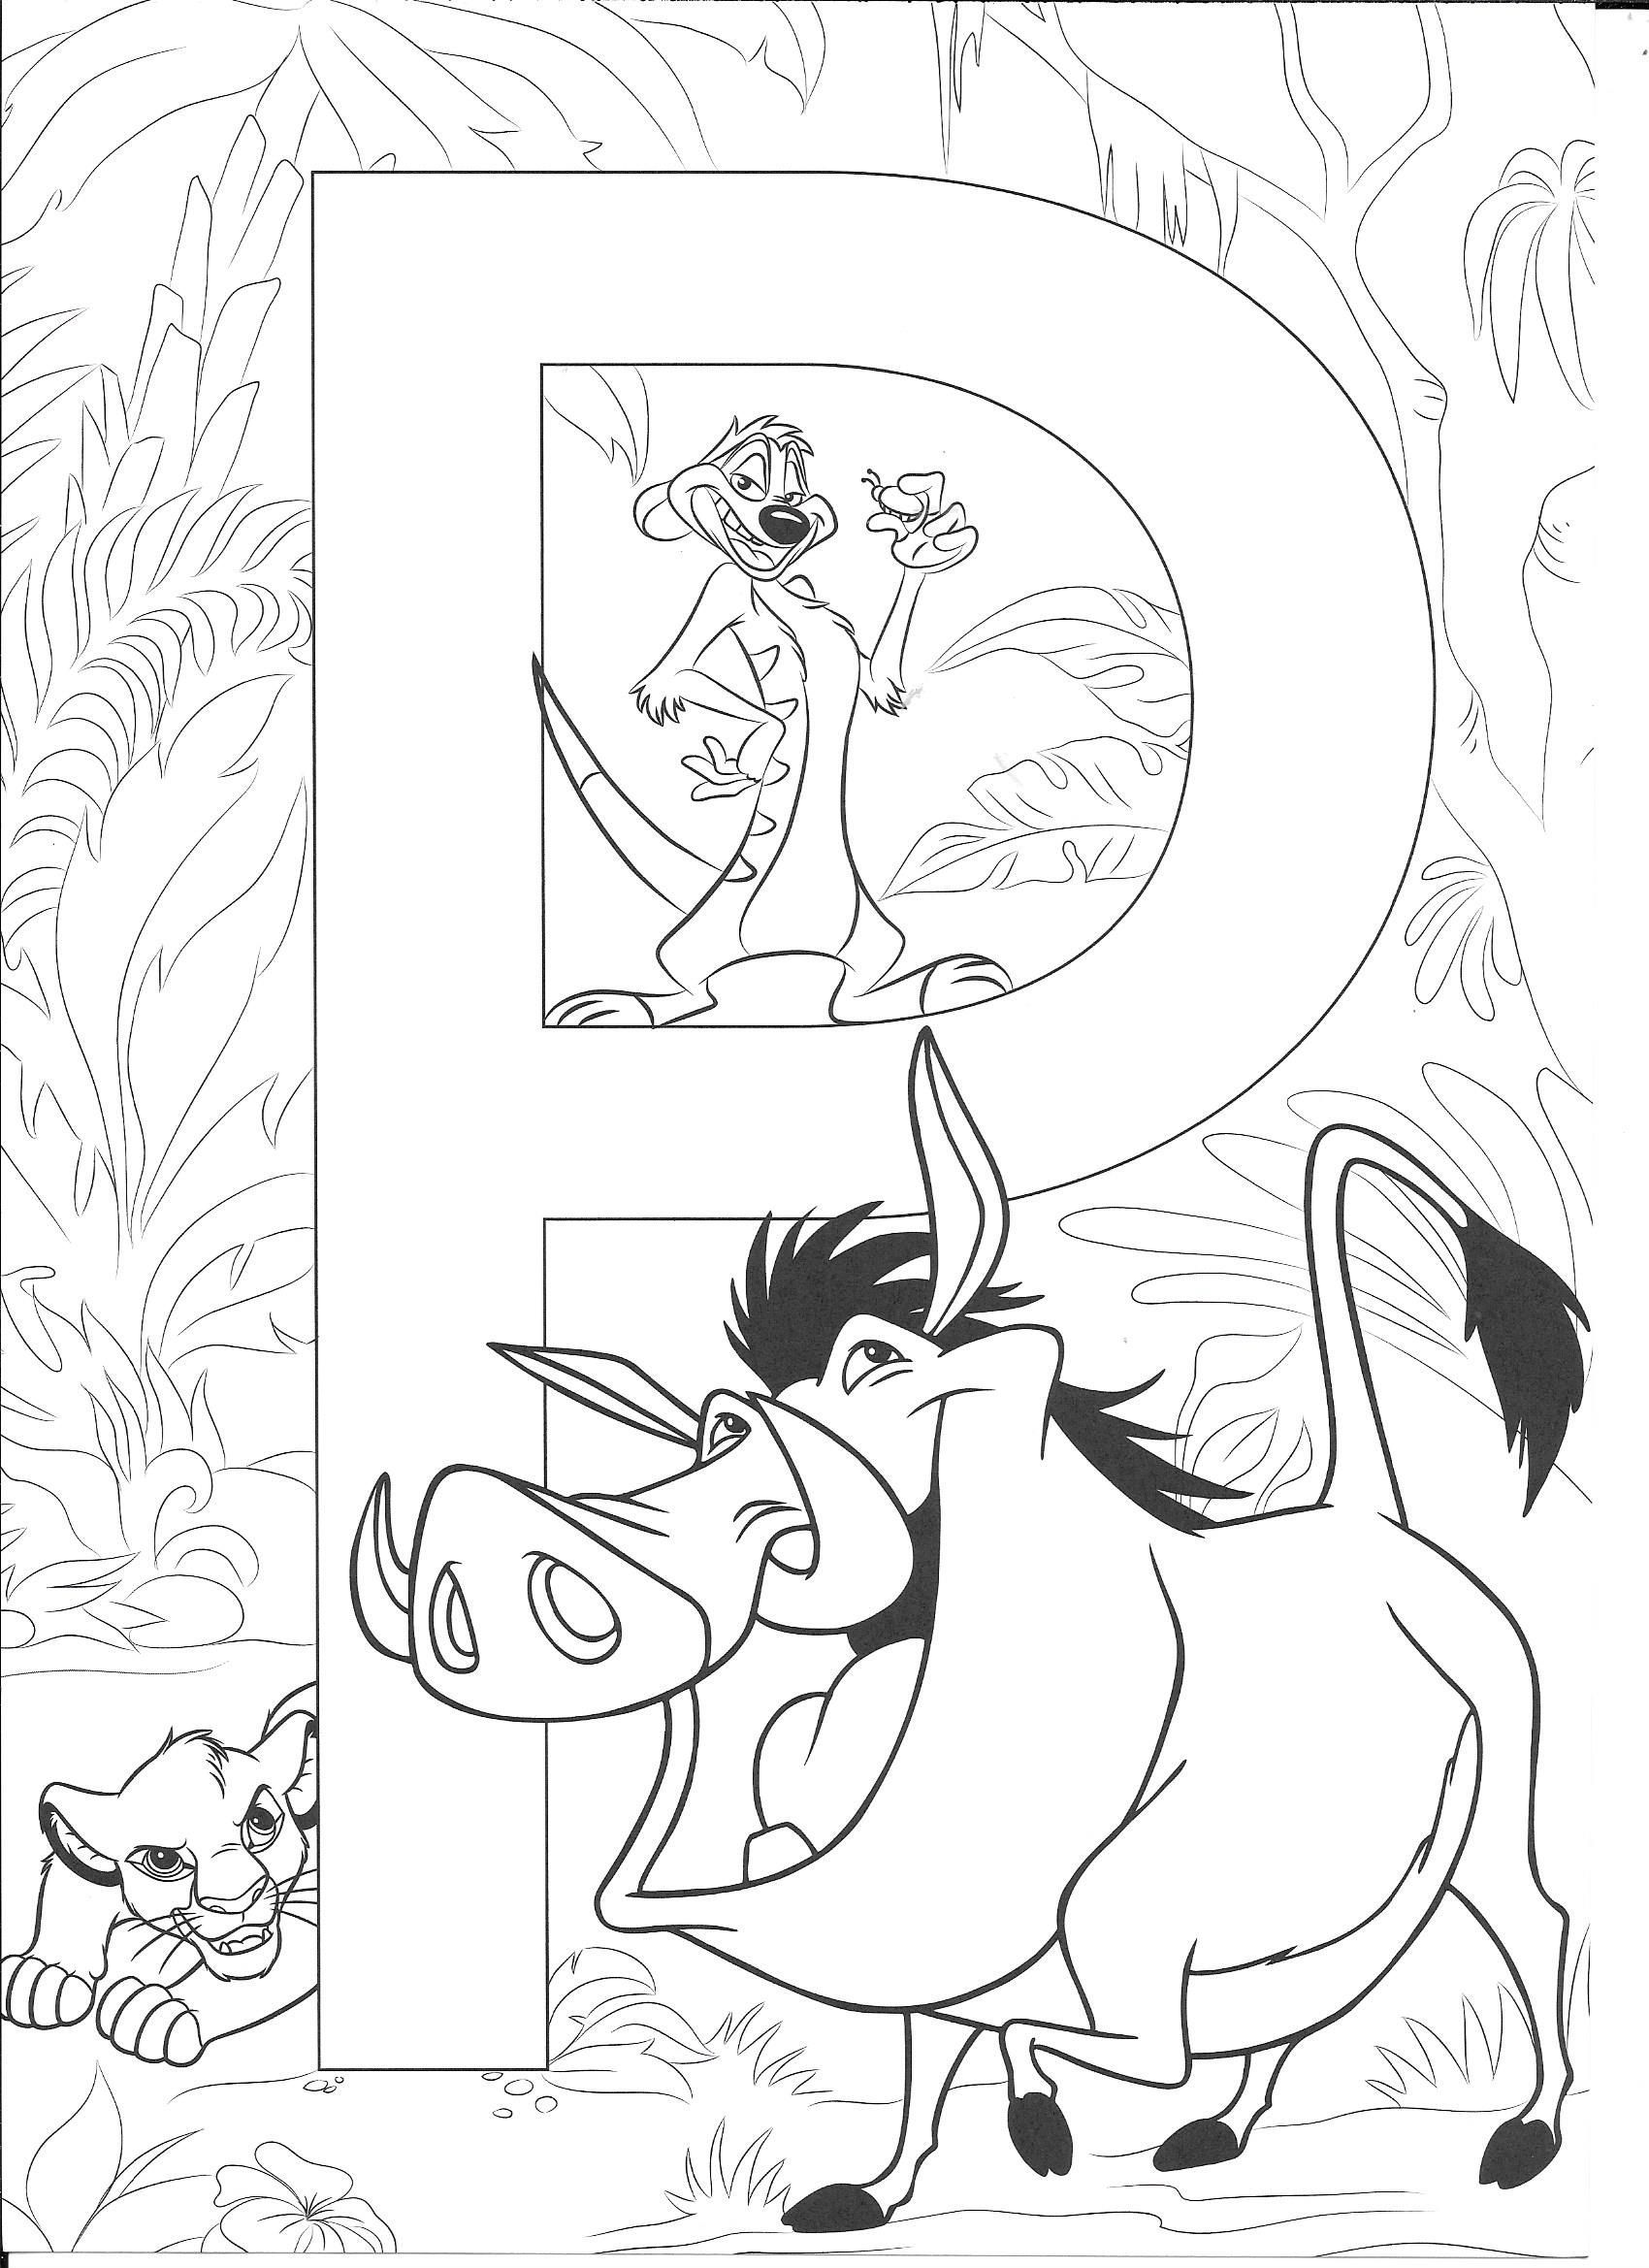 The lion king coloring page. Letter P with timone, pumba